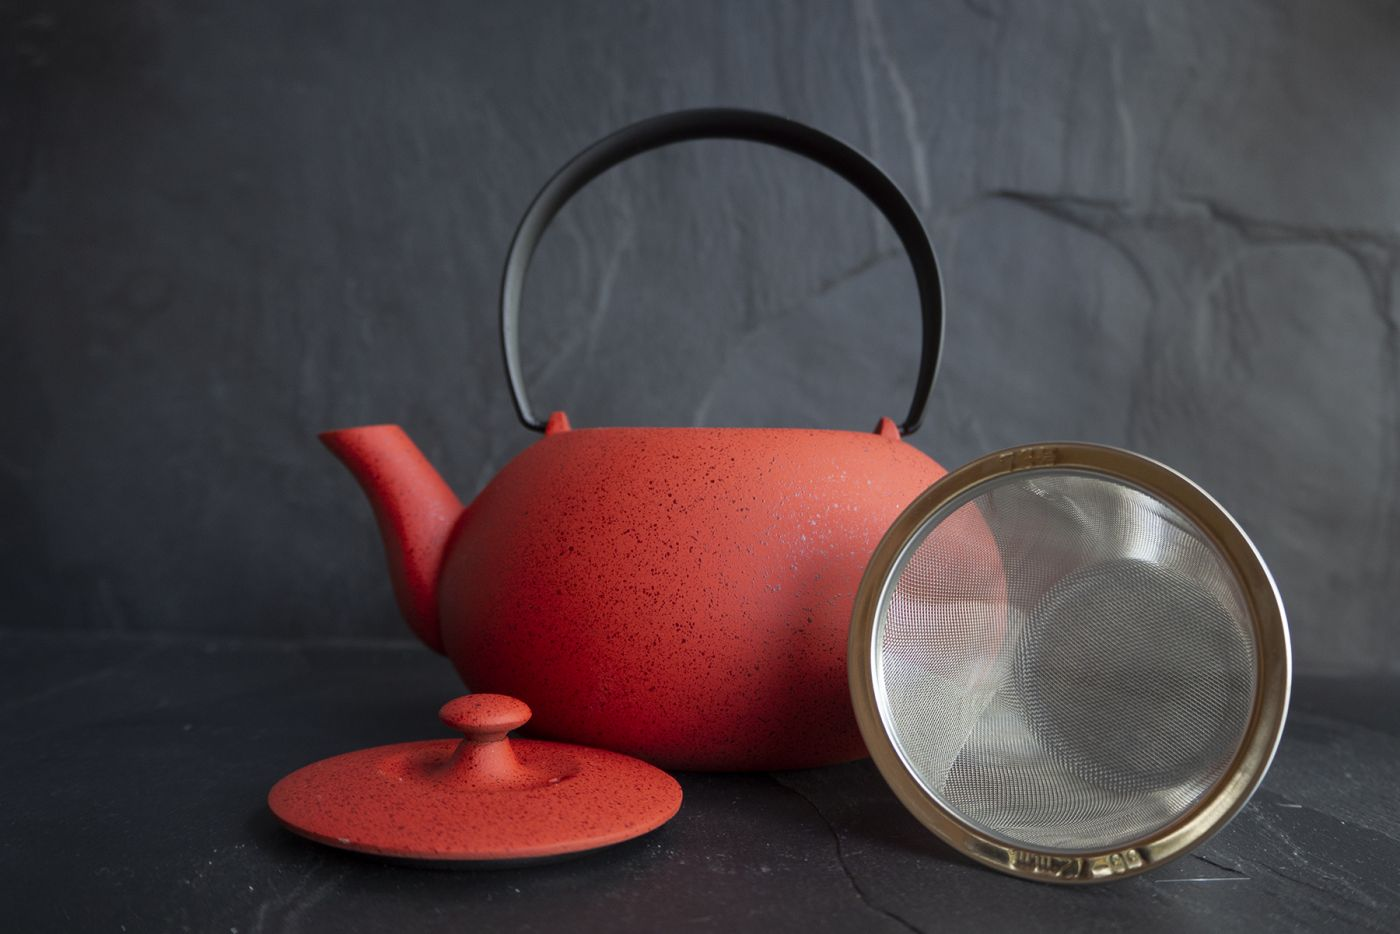 Wazuqu Japan Red Japanese Cast Iron Teapot 0.55L